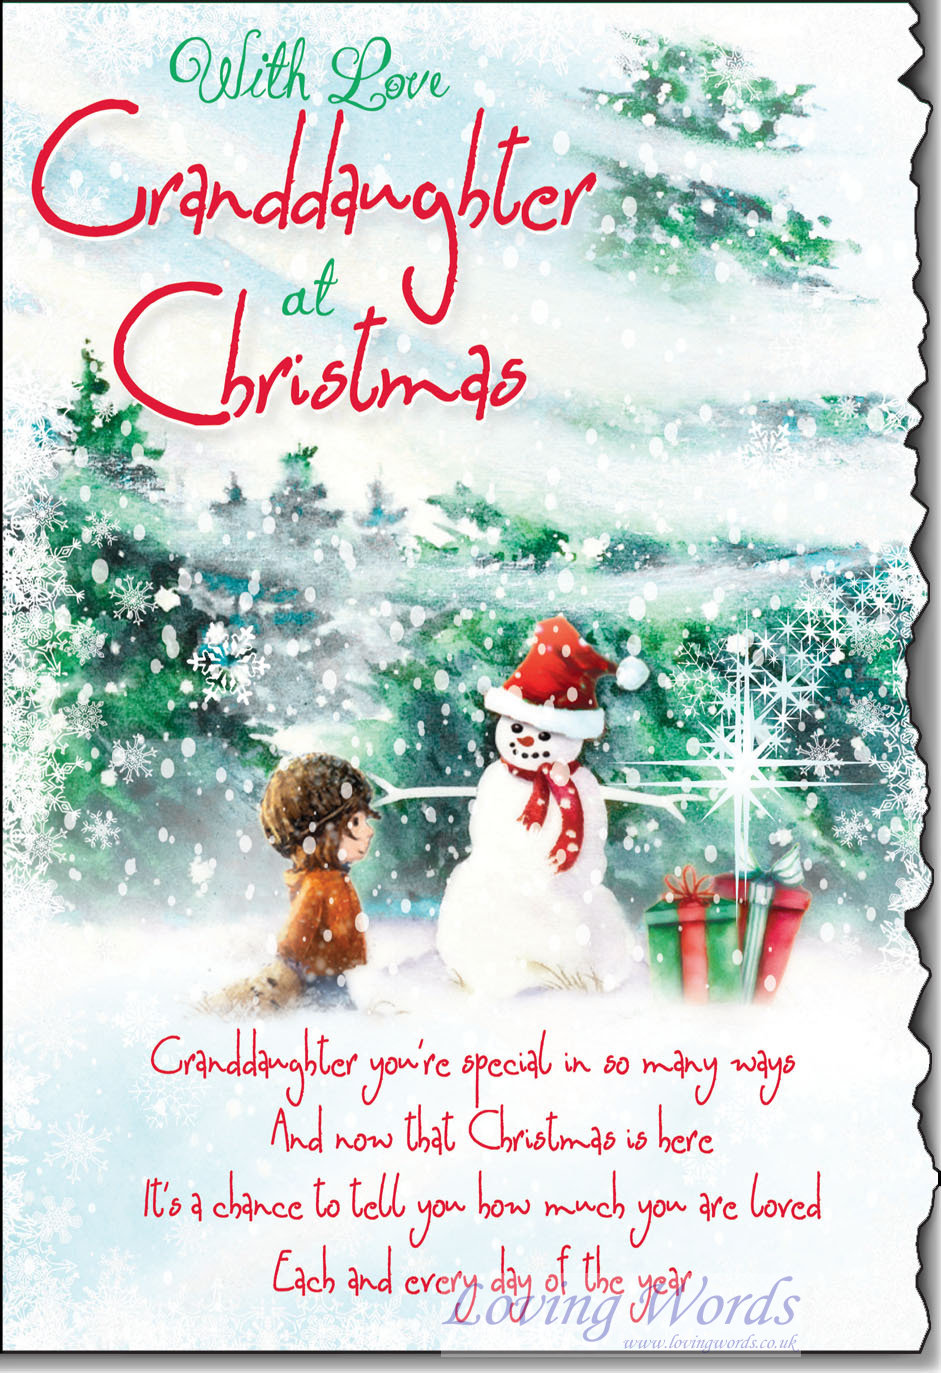 With Love Granddaughter at Christmas | Greeting Cards by ...